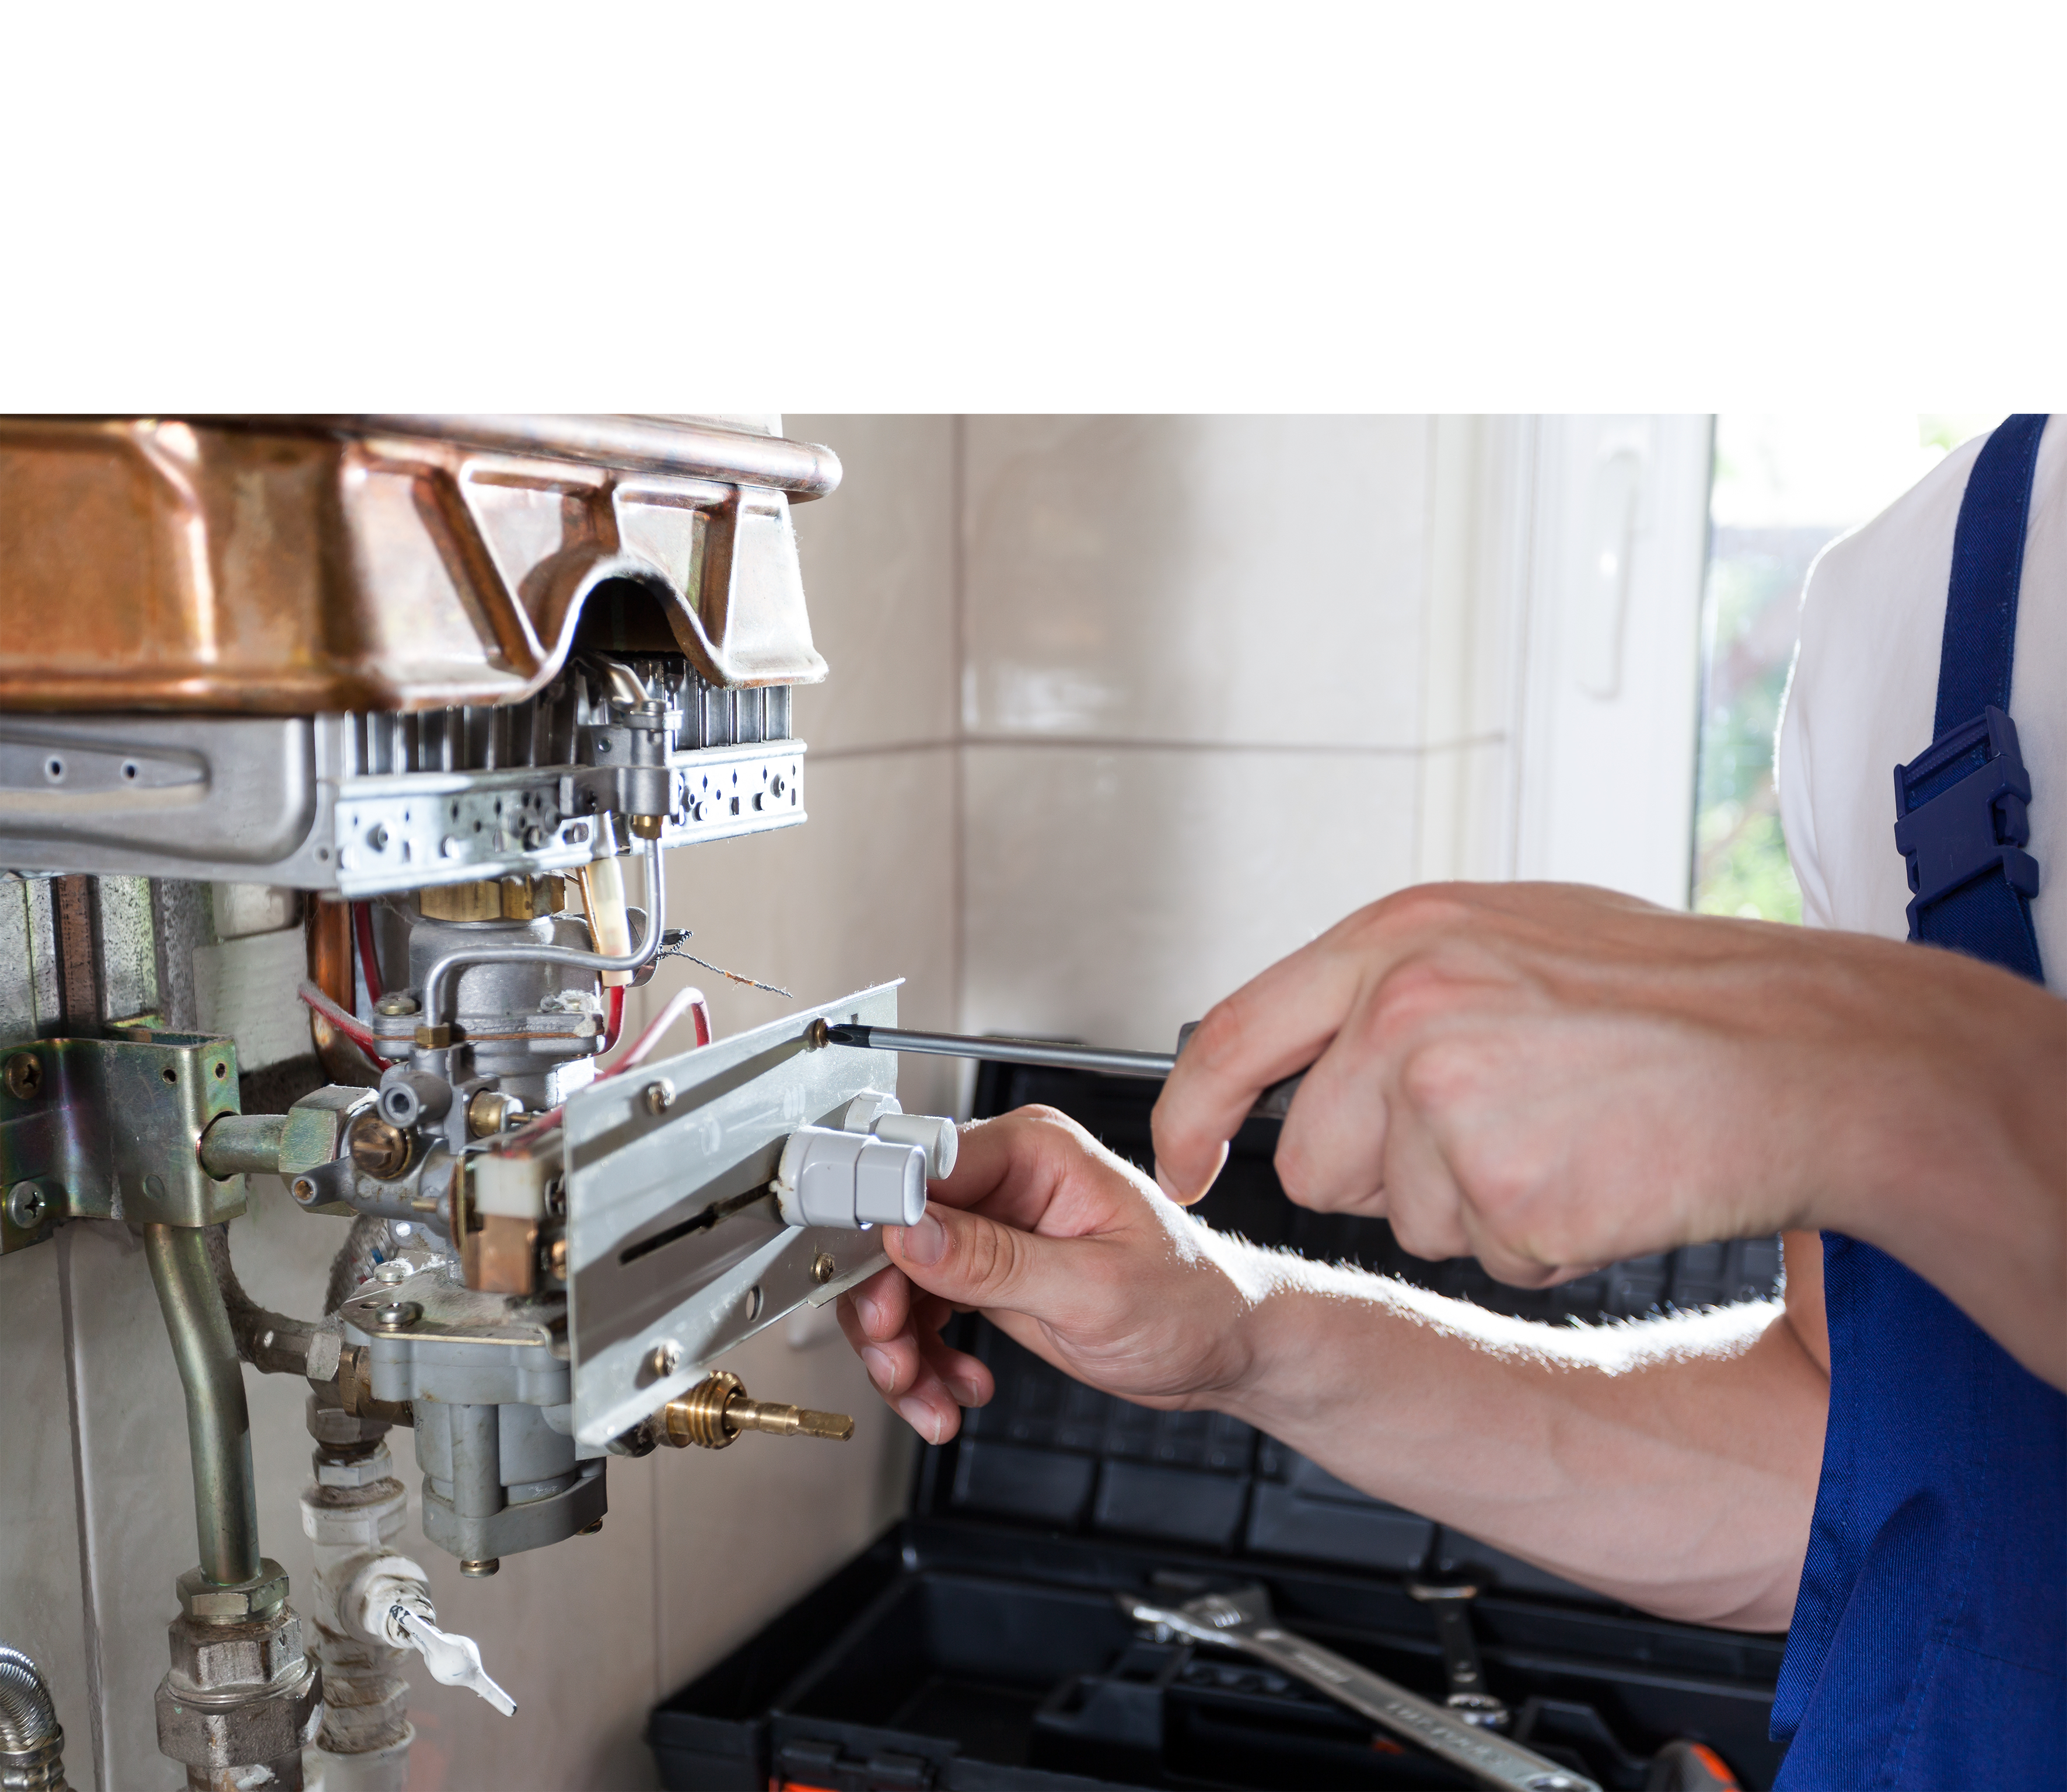 Boiler repair being carried out by Bristol plumber